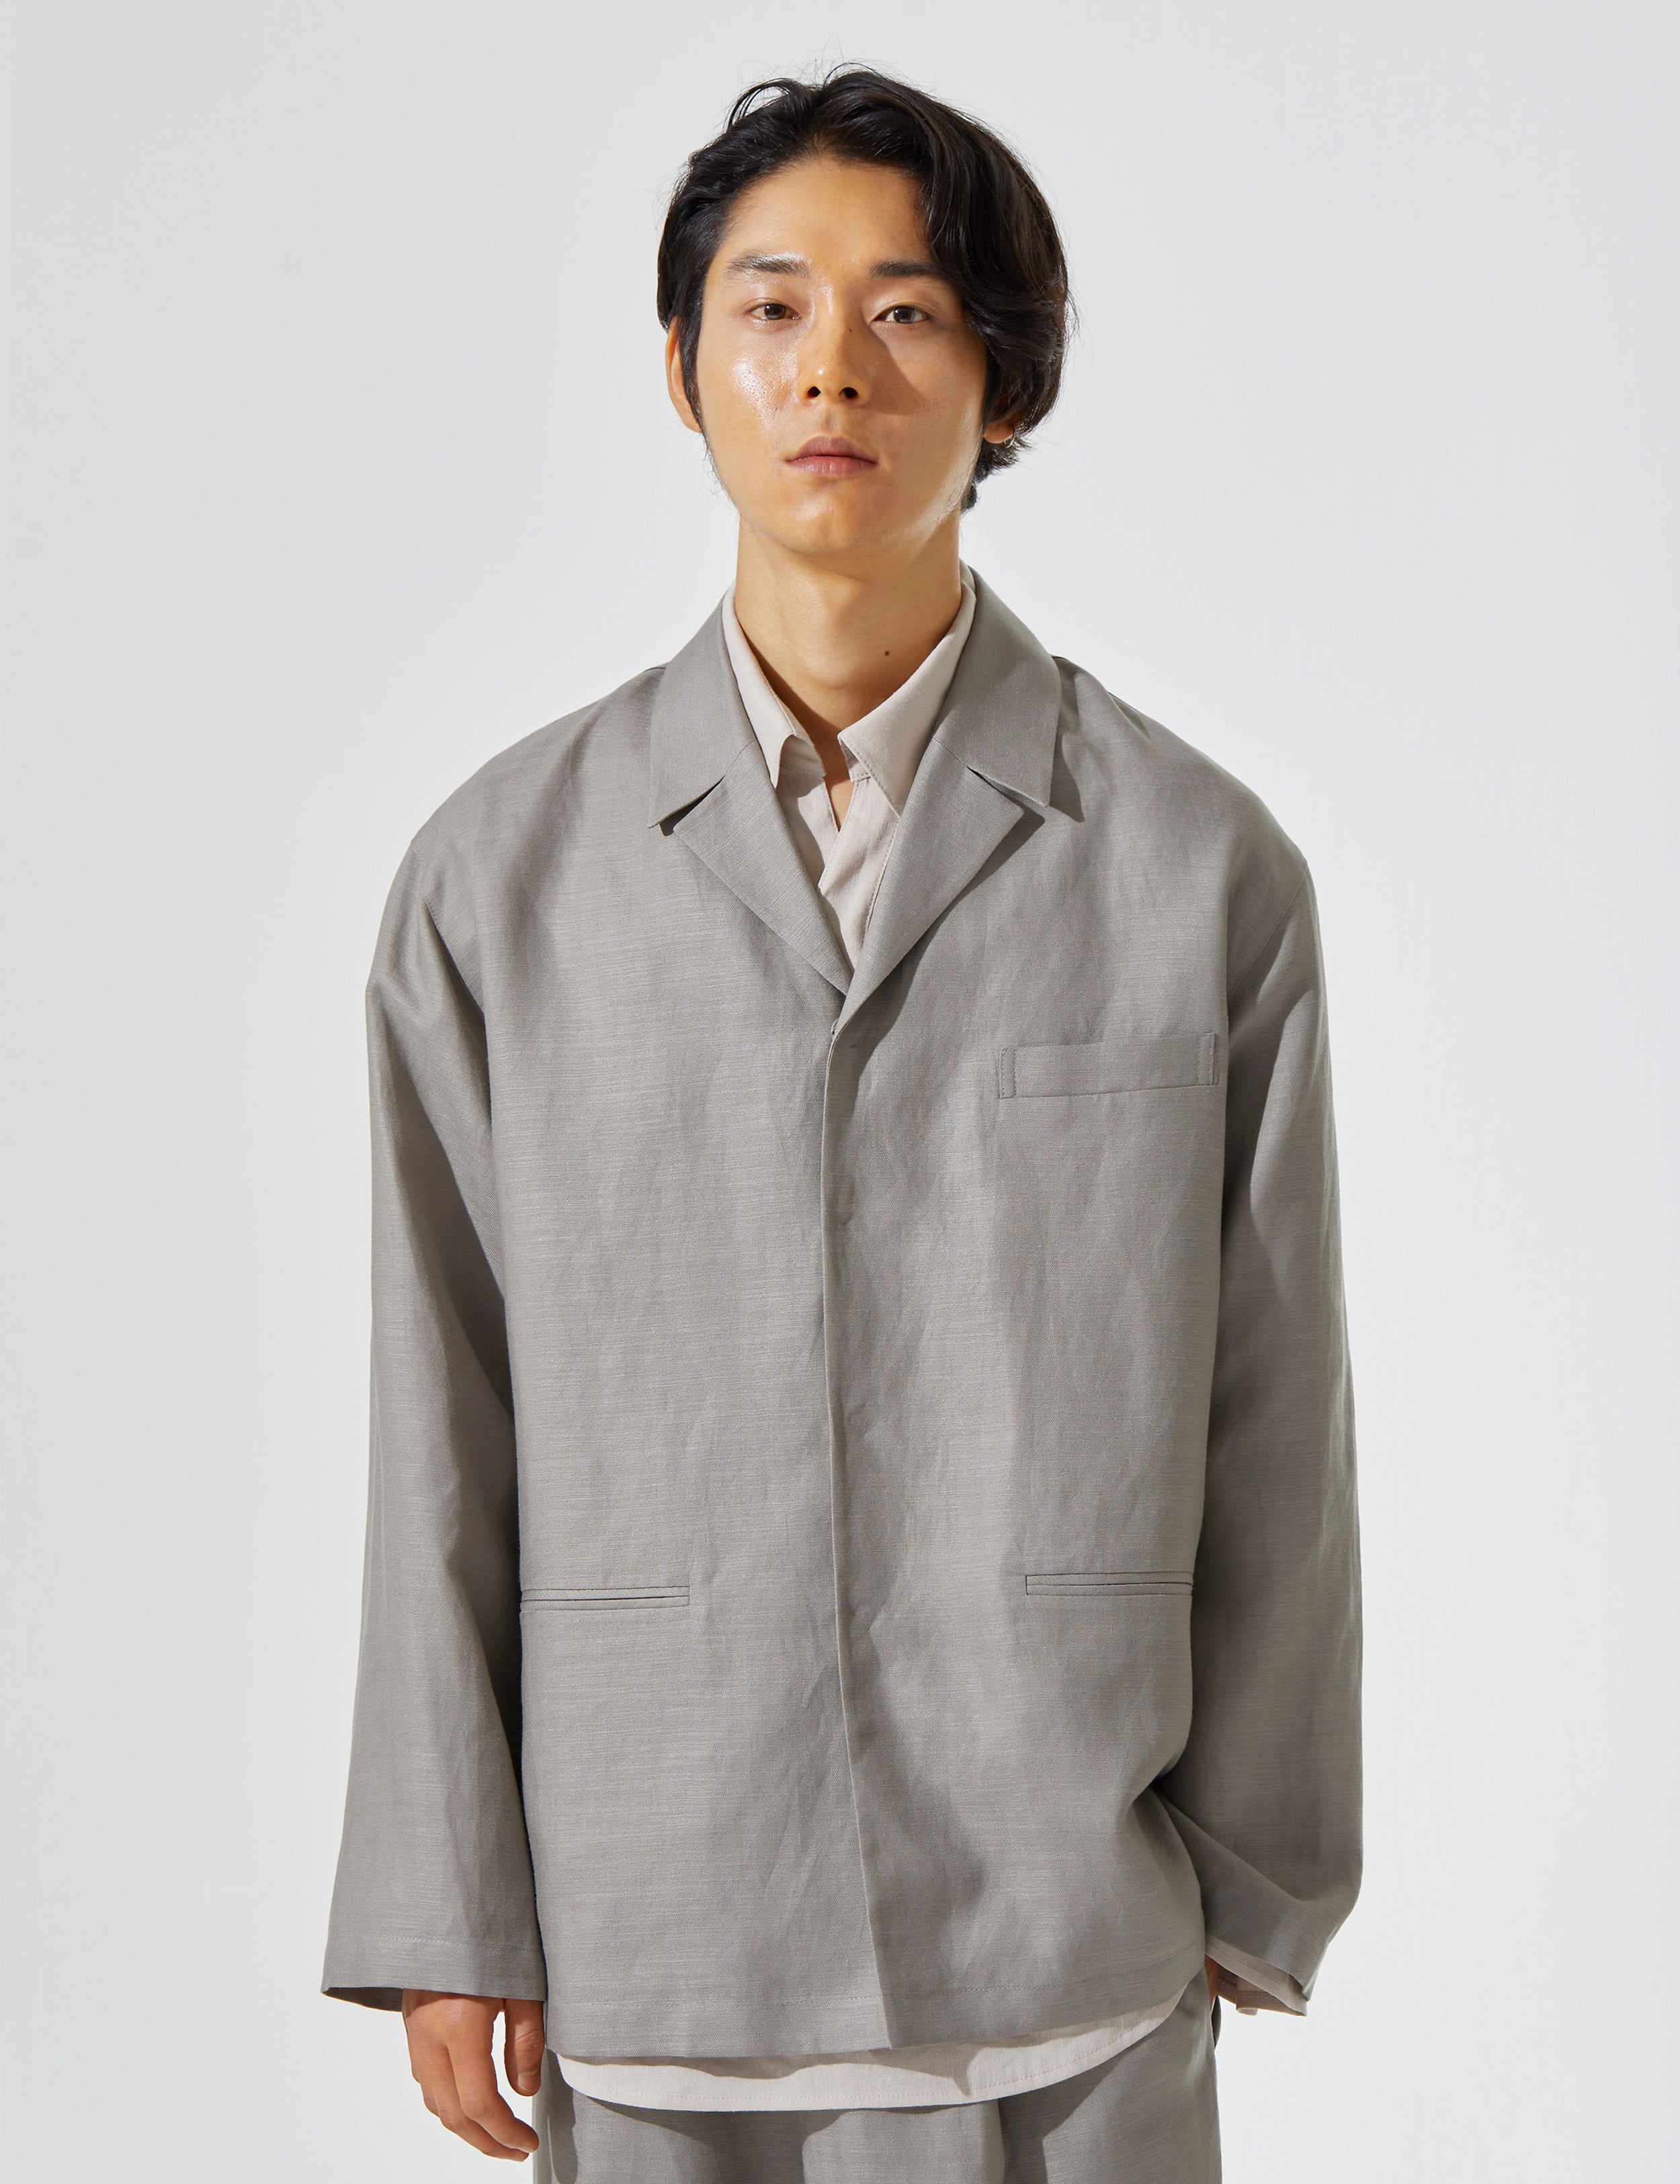 N.7 Shirt-jacket Khaki gray